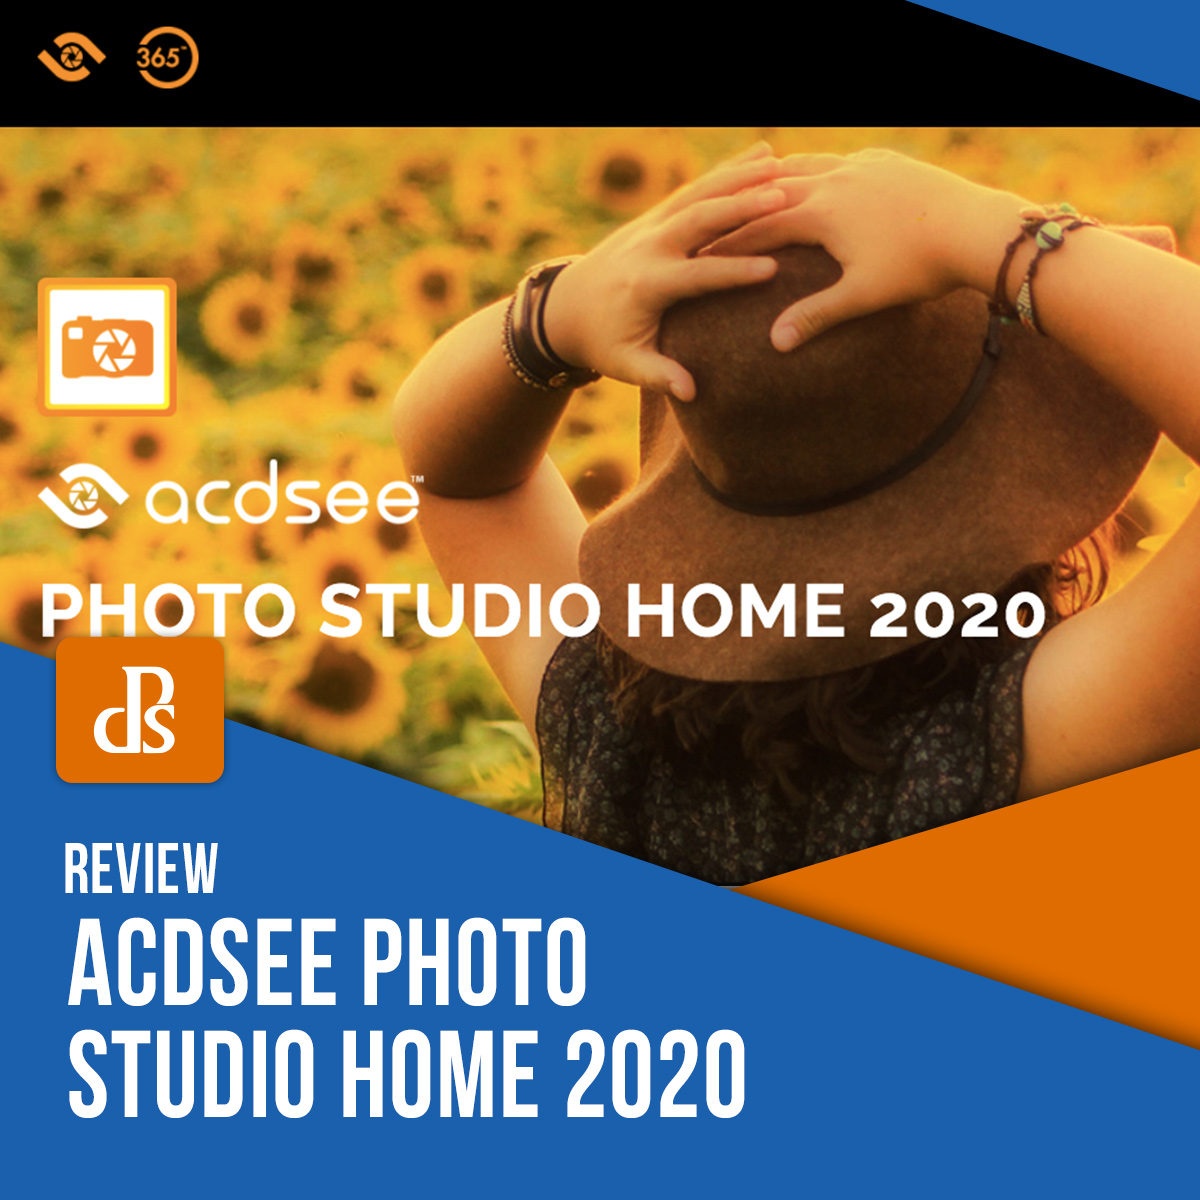 https://i2.wp.com/digital-photography-school.com/wp-content/uploads/2020/05/dps-acdsee-photo-studio-home-2020-review.jpg?ssl=1